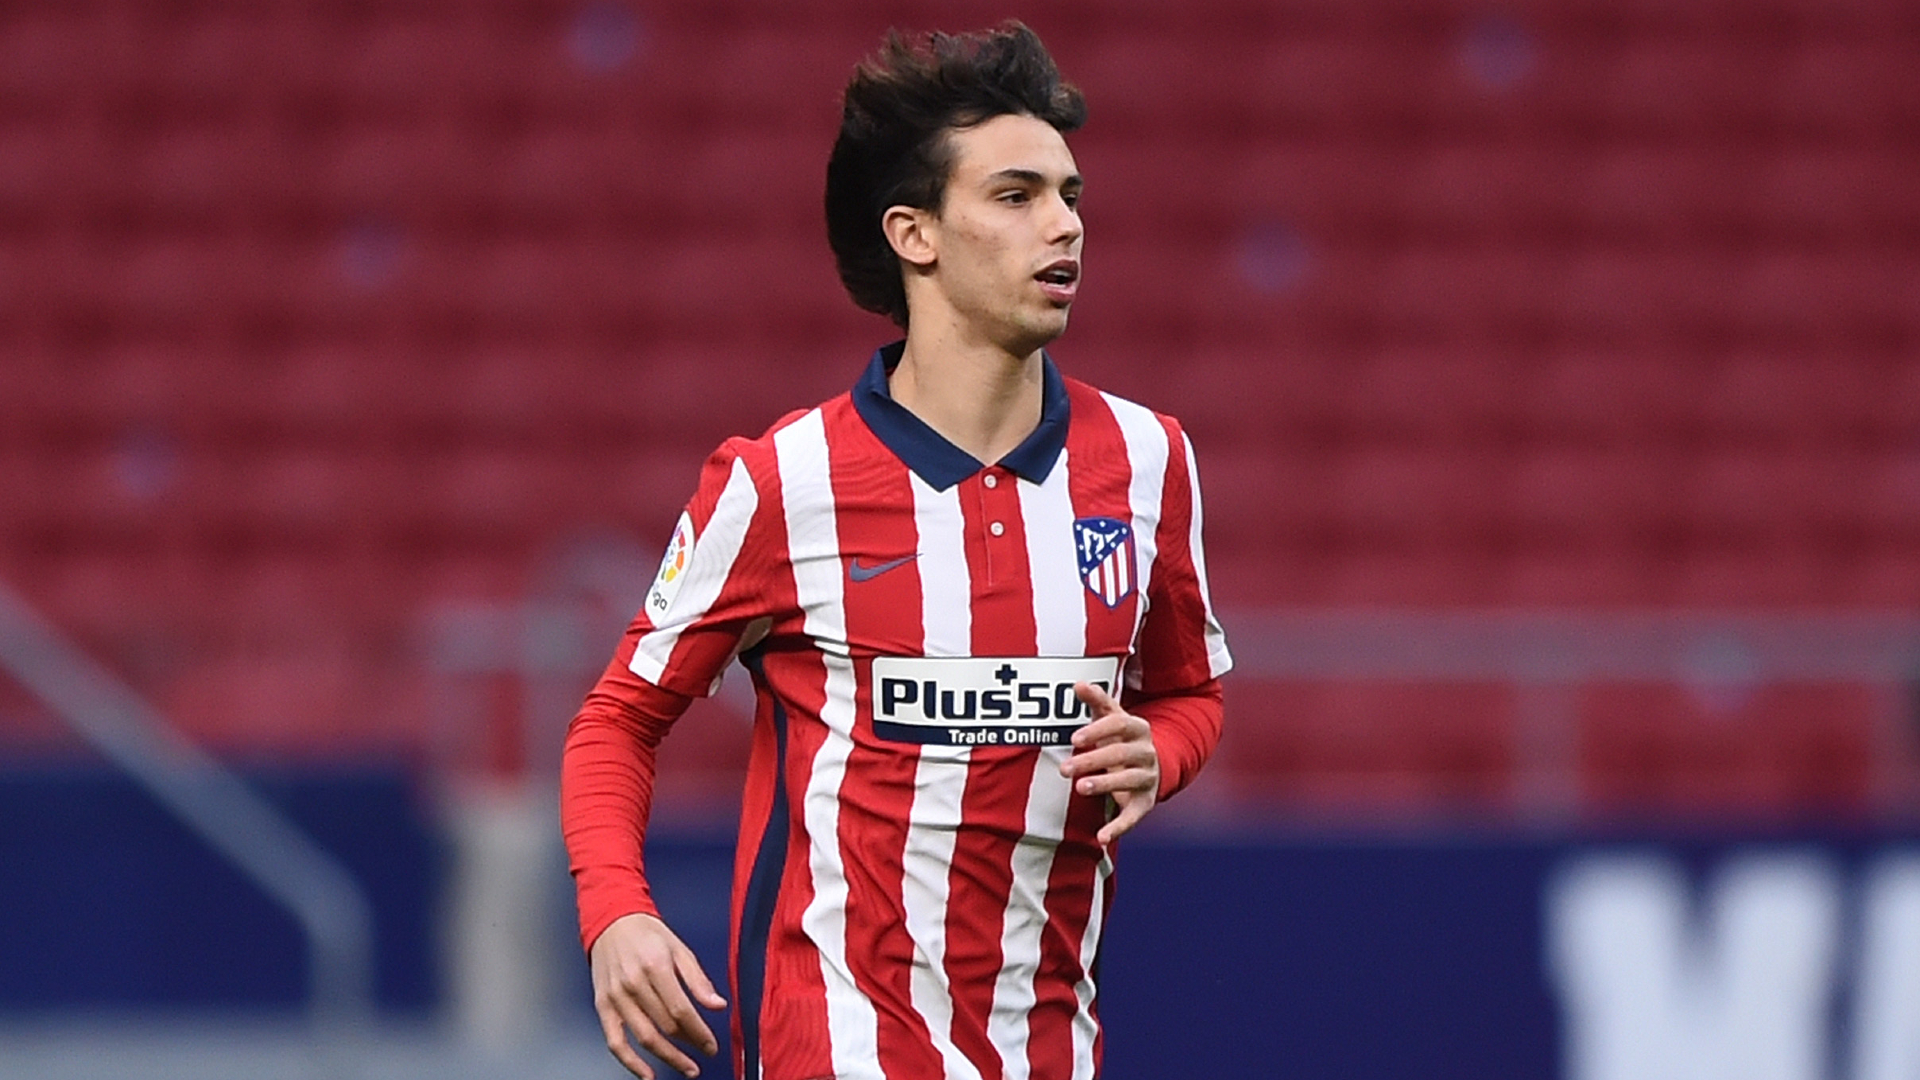 Simeone clarifies Joao Felix comments: Either I express myself badly, or they interpret me badly